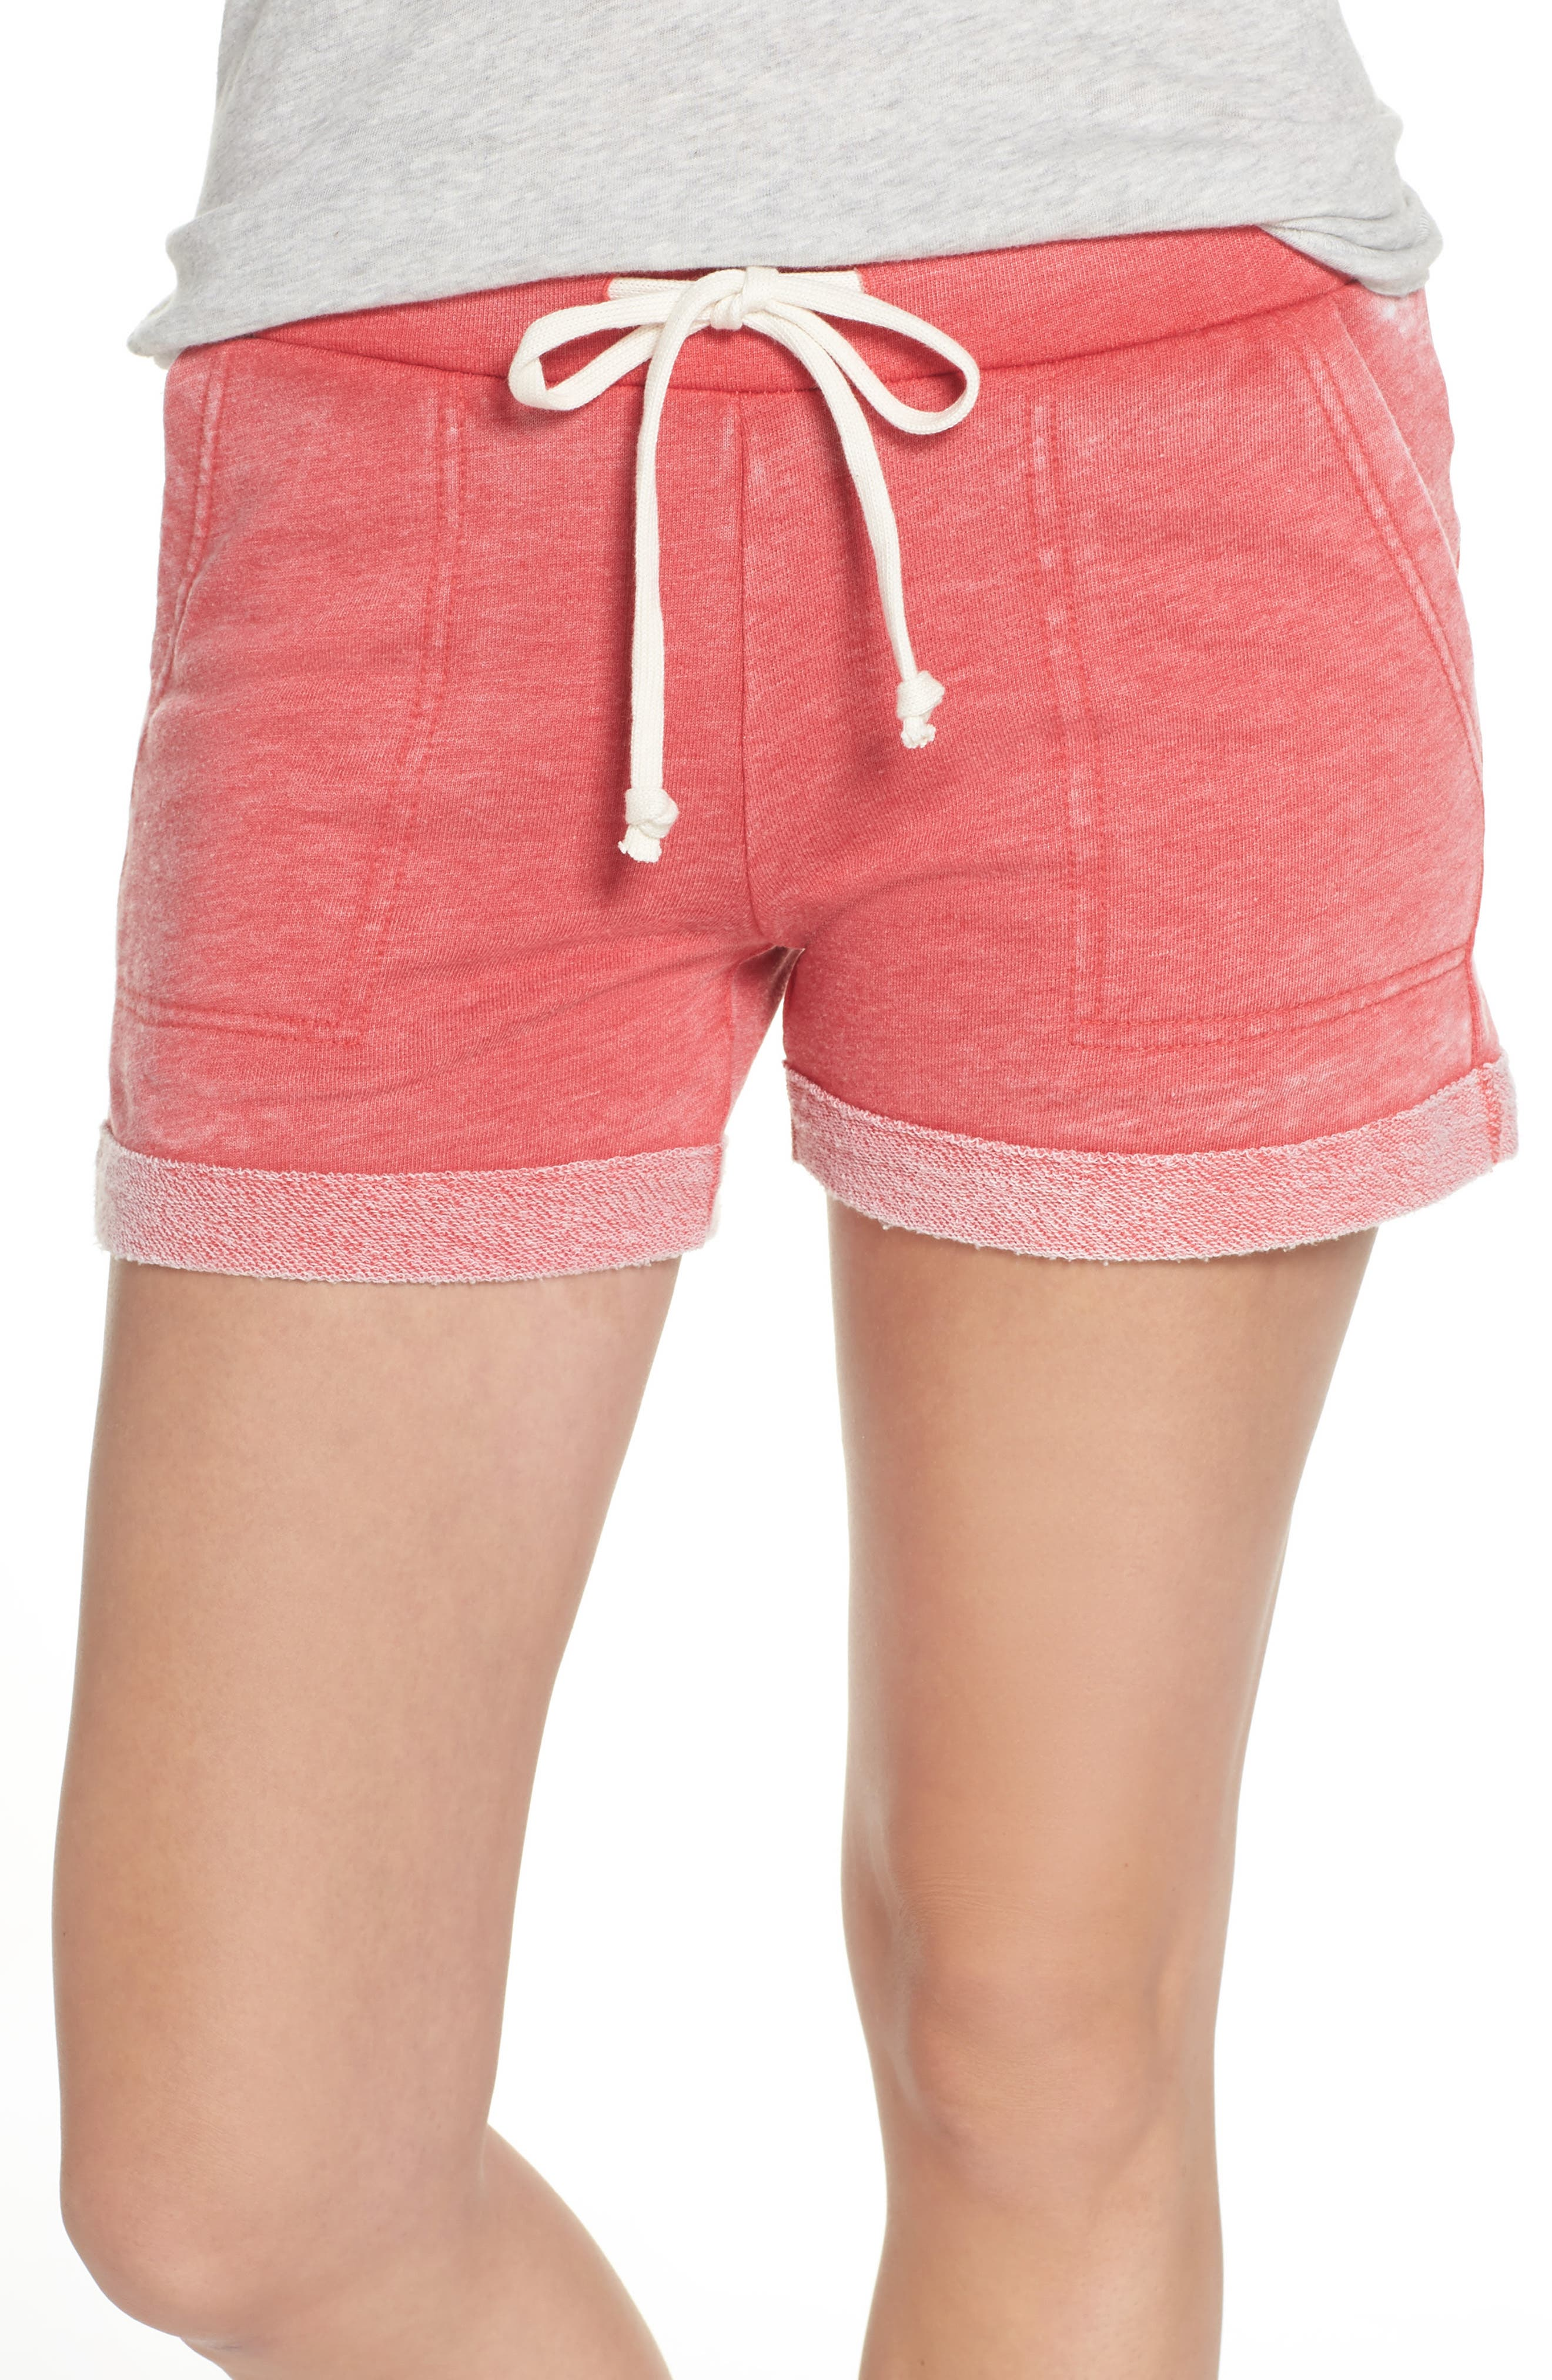 Lounge Shorts,                         Main,                         color, Red